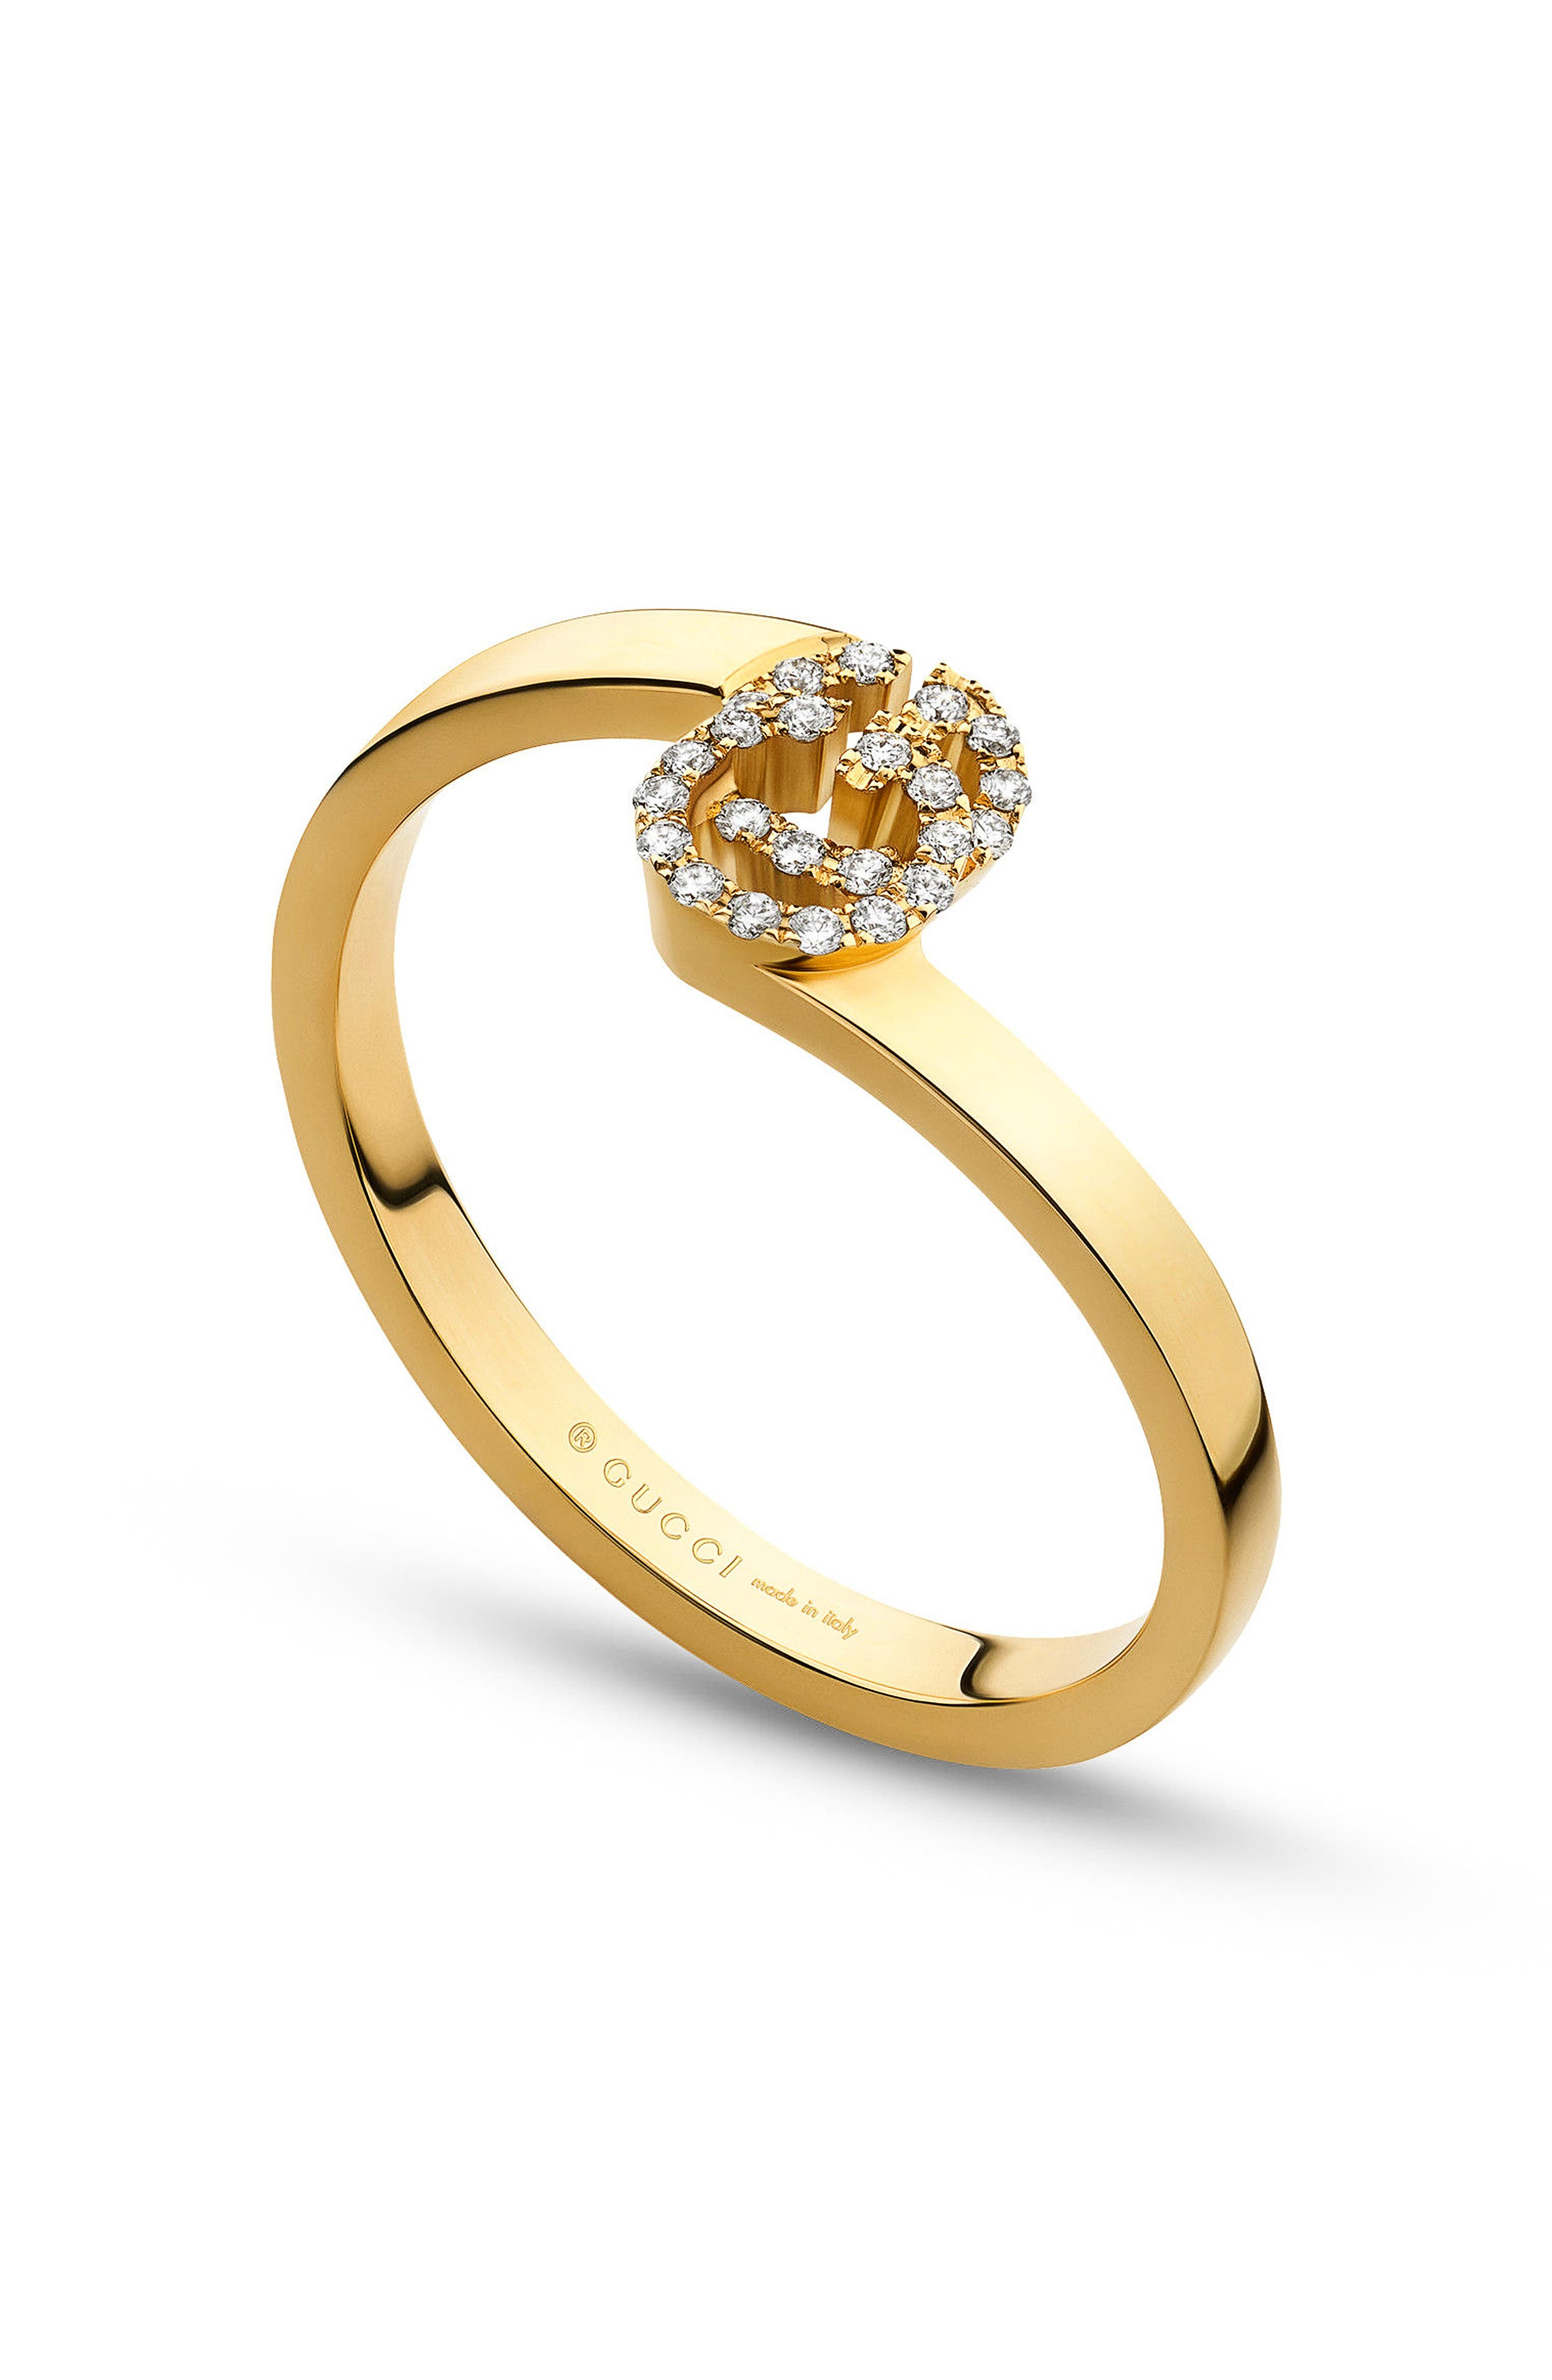 Double-G Diamond Stack Ring,                         Main,                         color, YELLOW GOLD